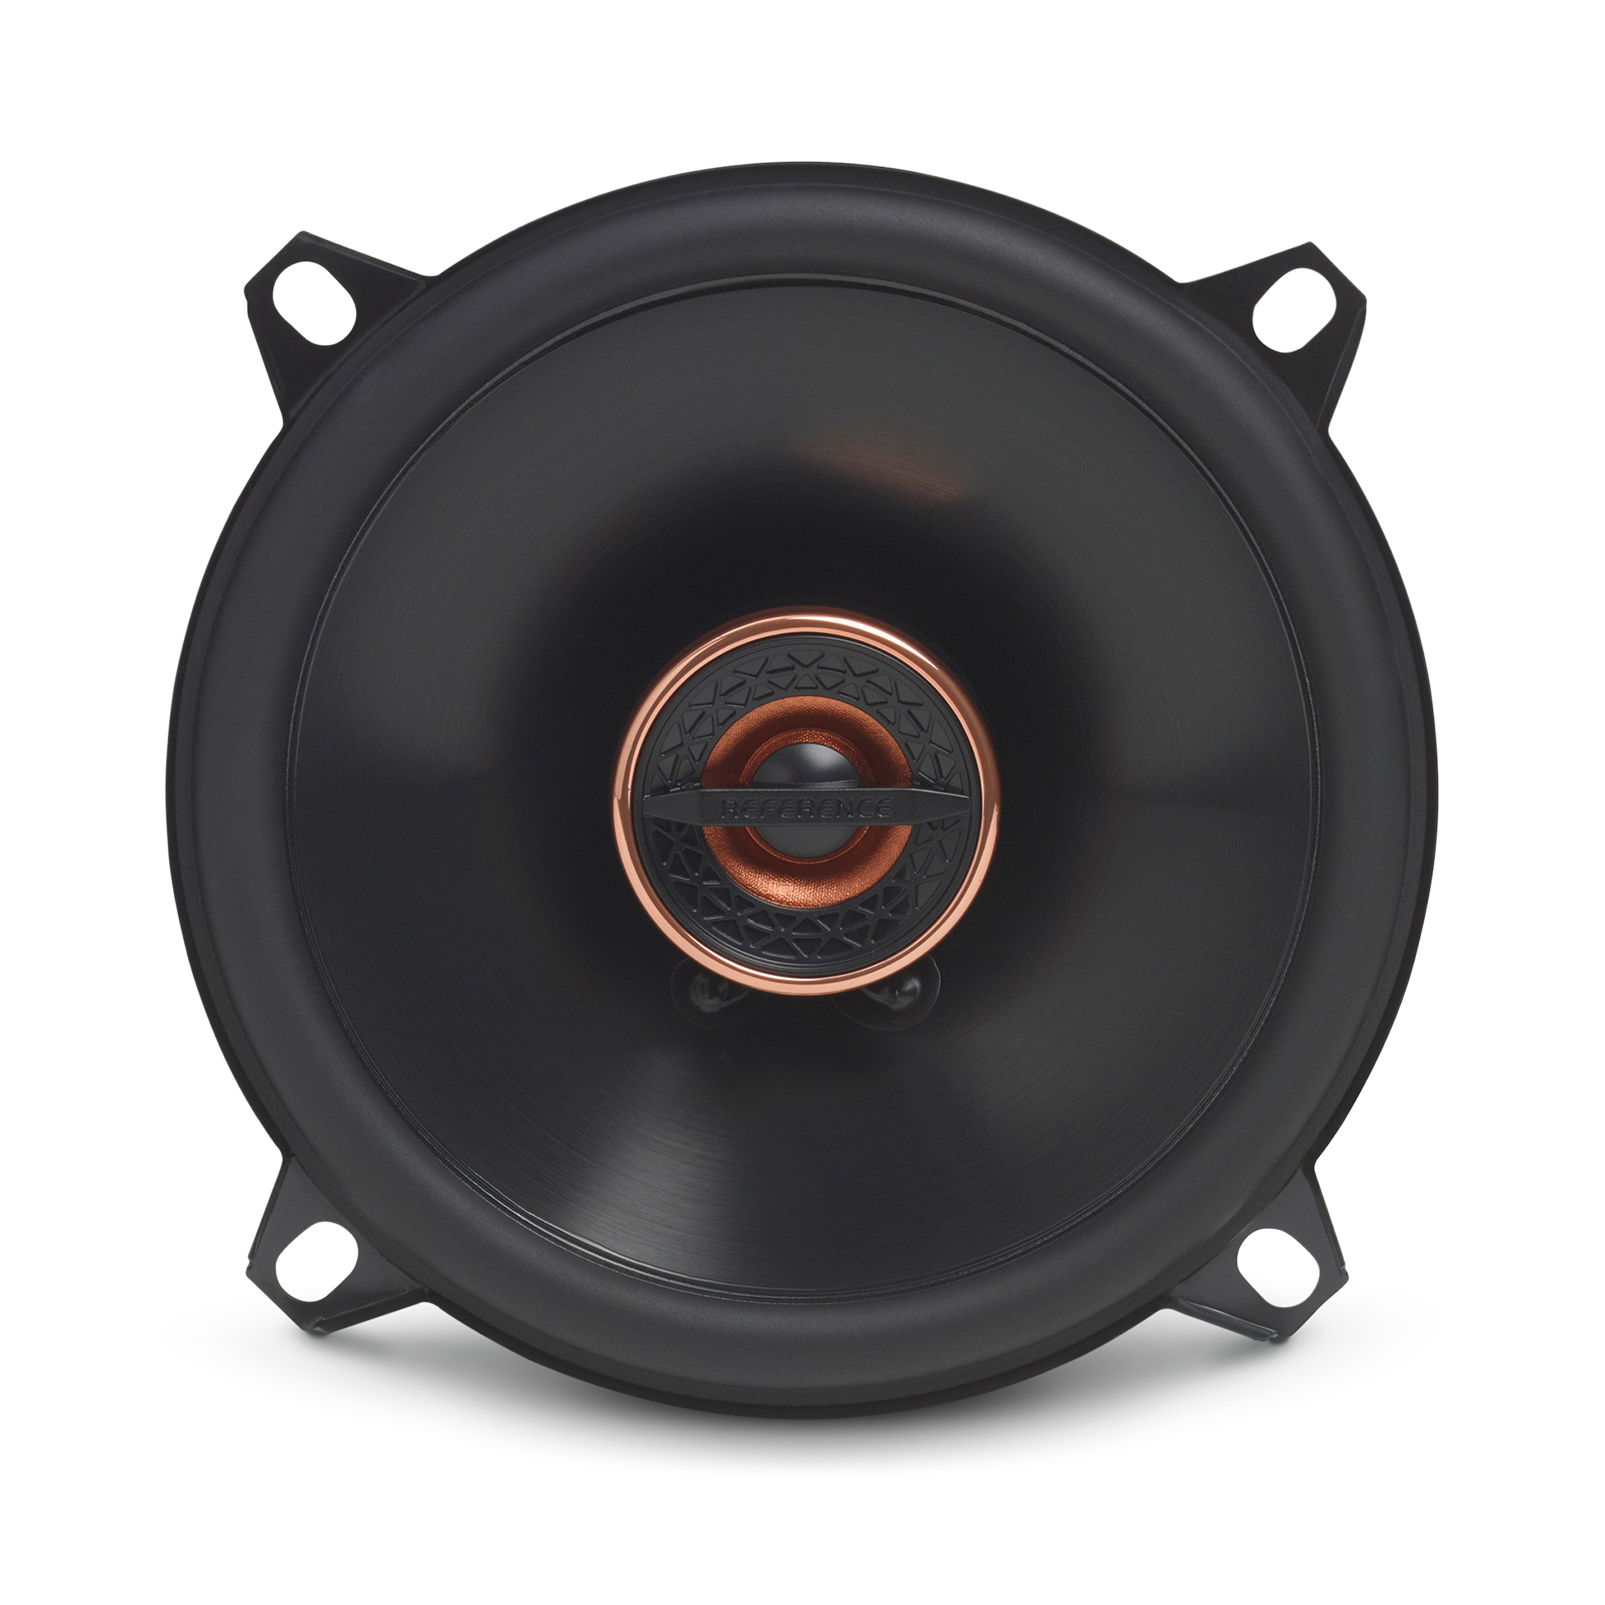 """Reference 5032cfx - Black - 5-1/4"""" (130mm) coaxial car speaker, 135W - Front"""